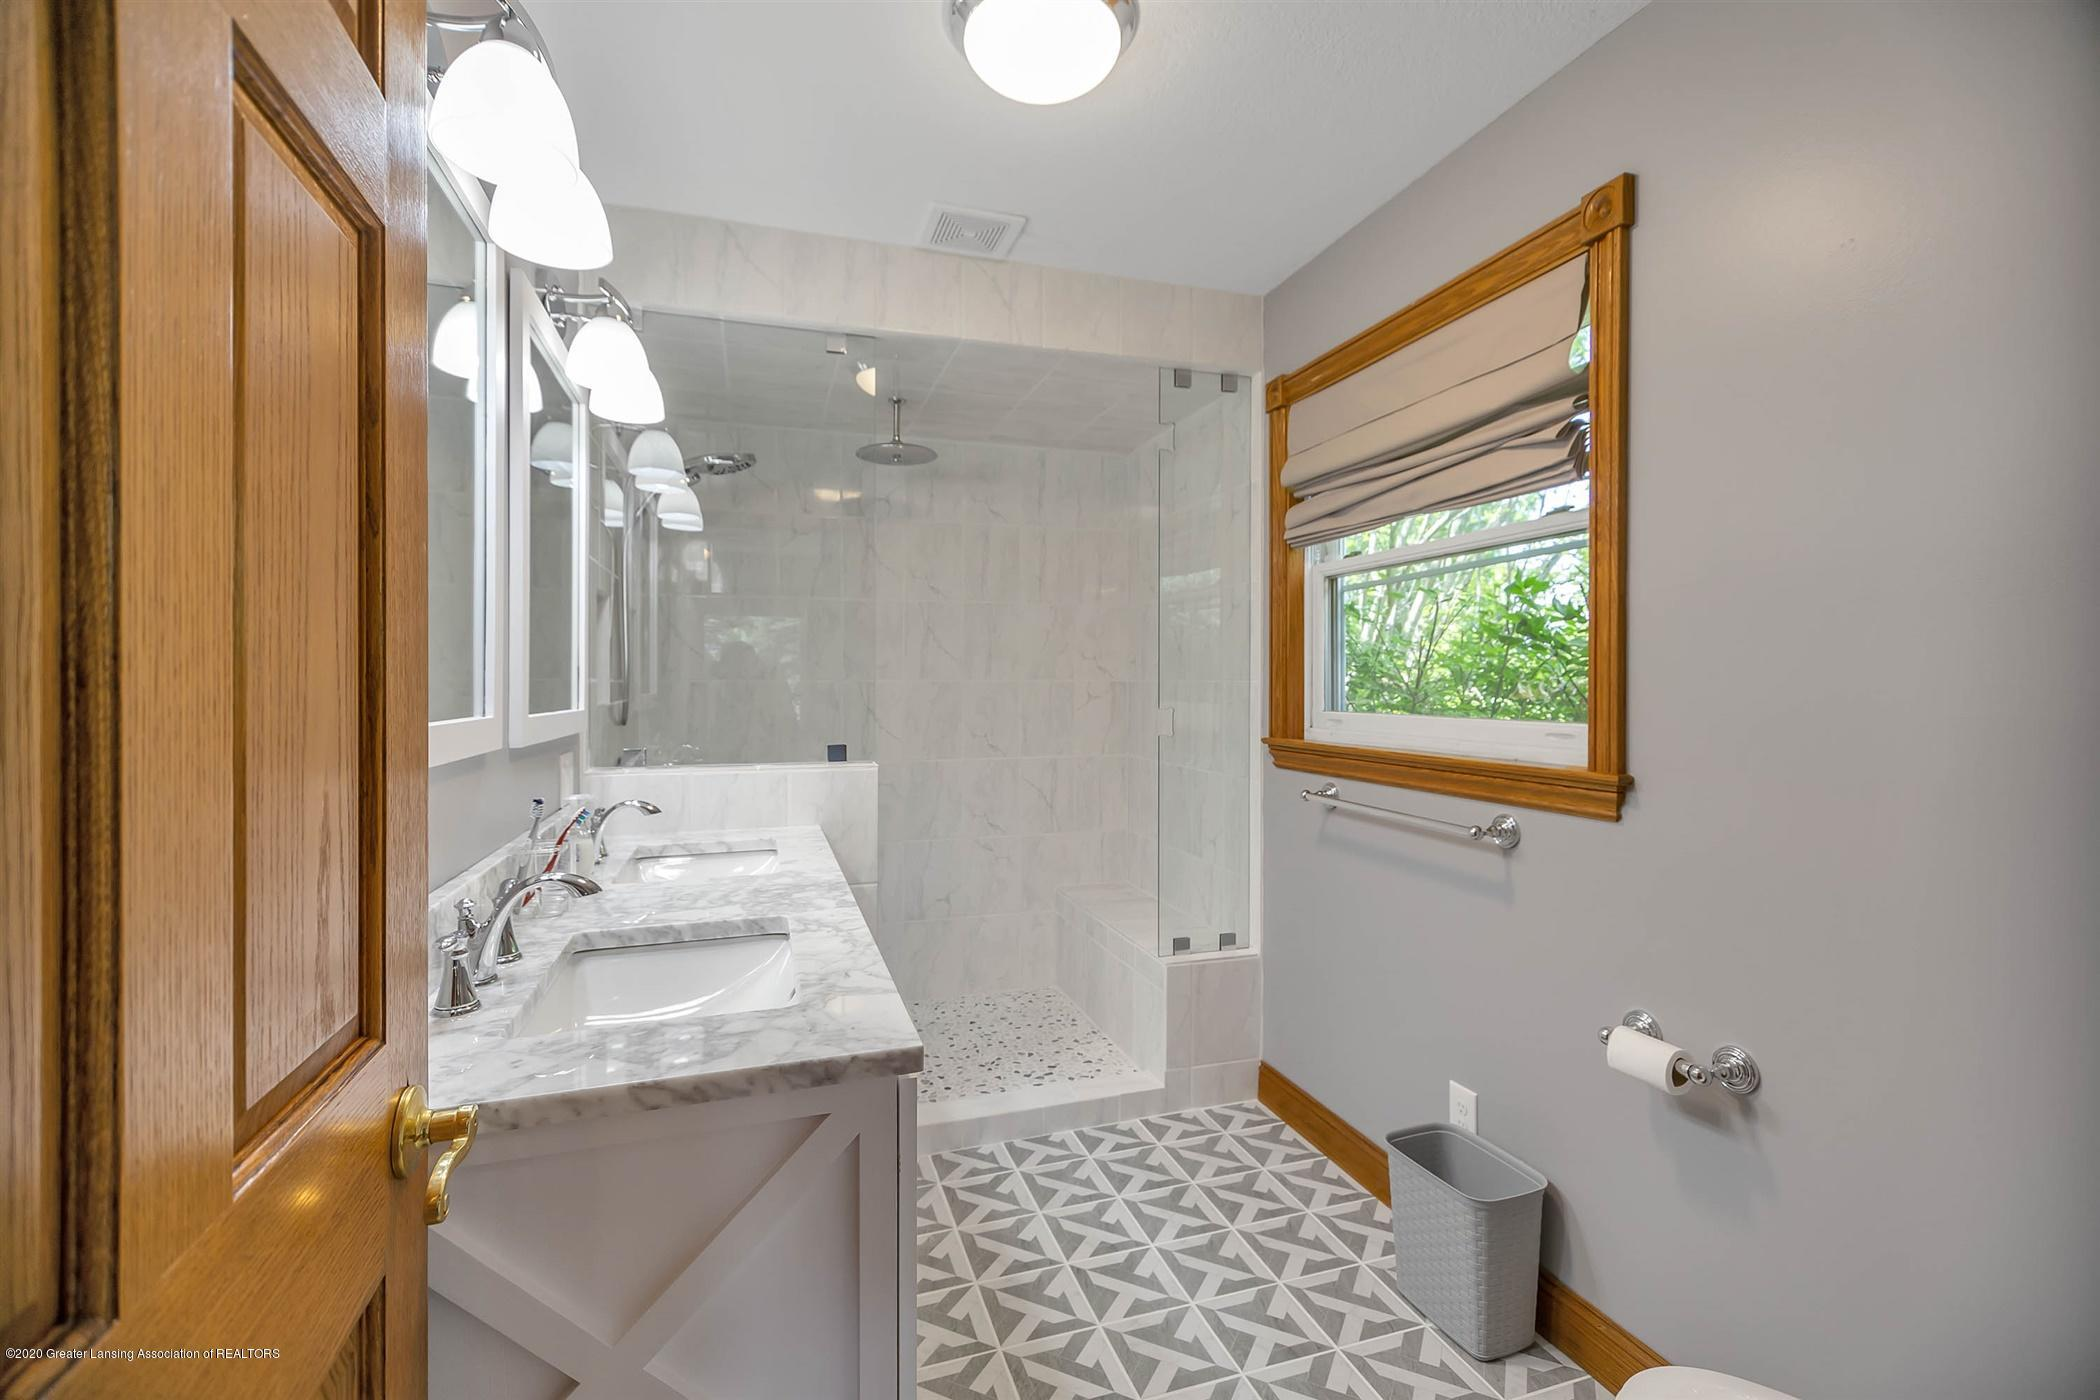 4445 W Britton Rd - UPPER LEVEL Master Bath - 17